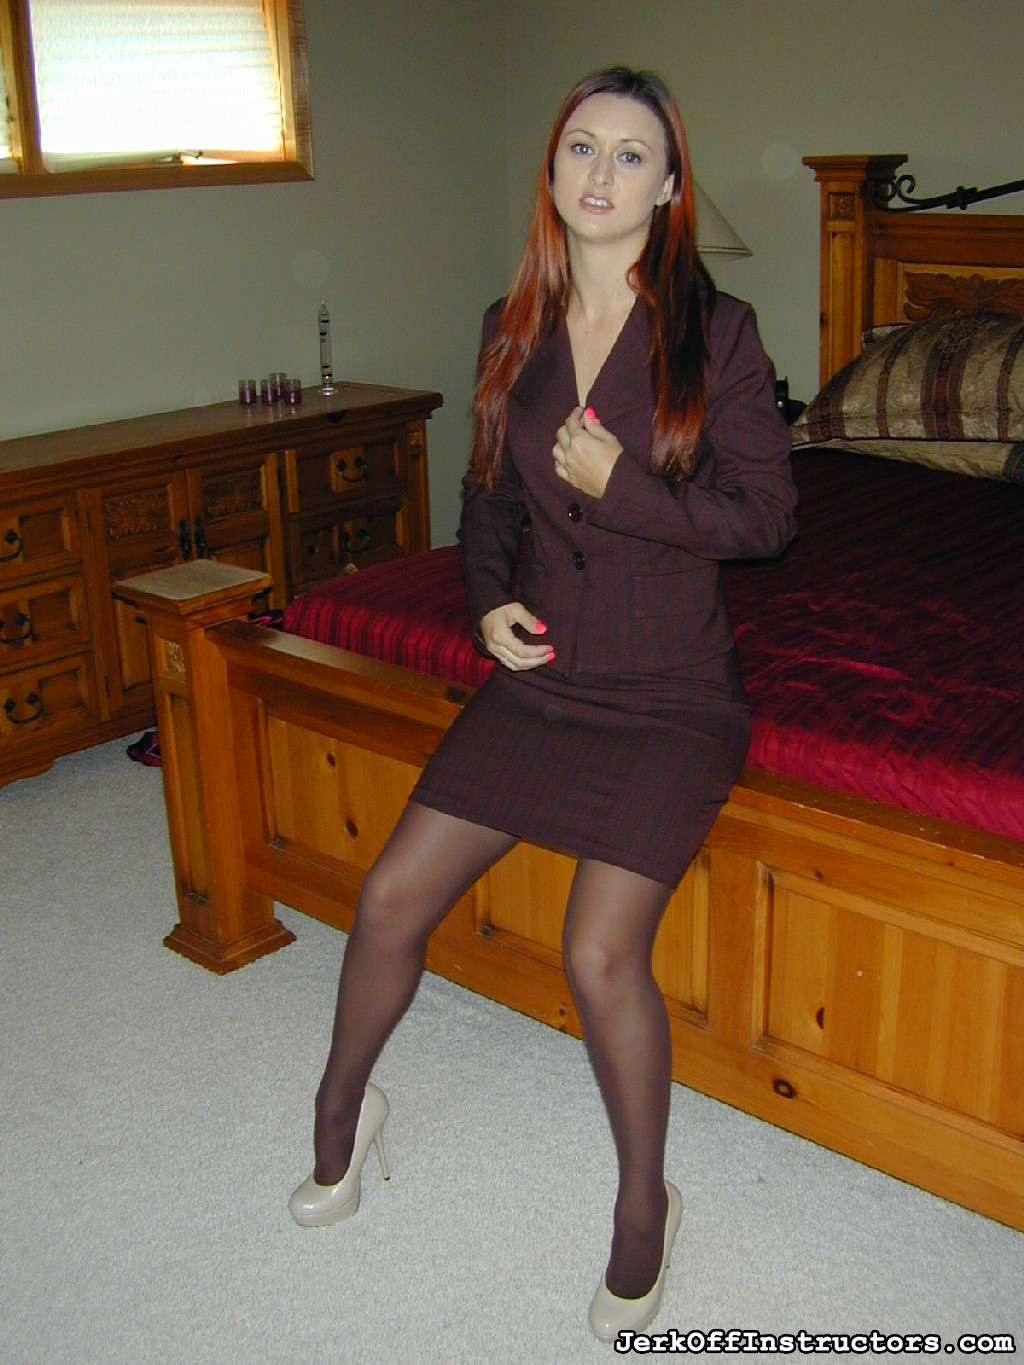 Next applicant karlie montana. Karlie Montana is in her bedroom after a long day of job seeking and she's still in her office attire, ready to interview with you. She's dressed in a libidinous brown skirt suit with matching brown pantyhose and high heels.